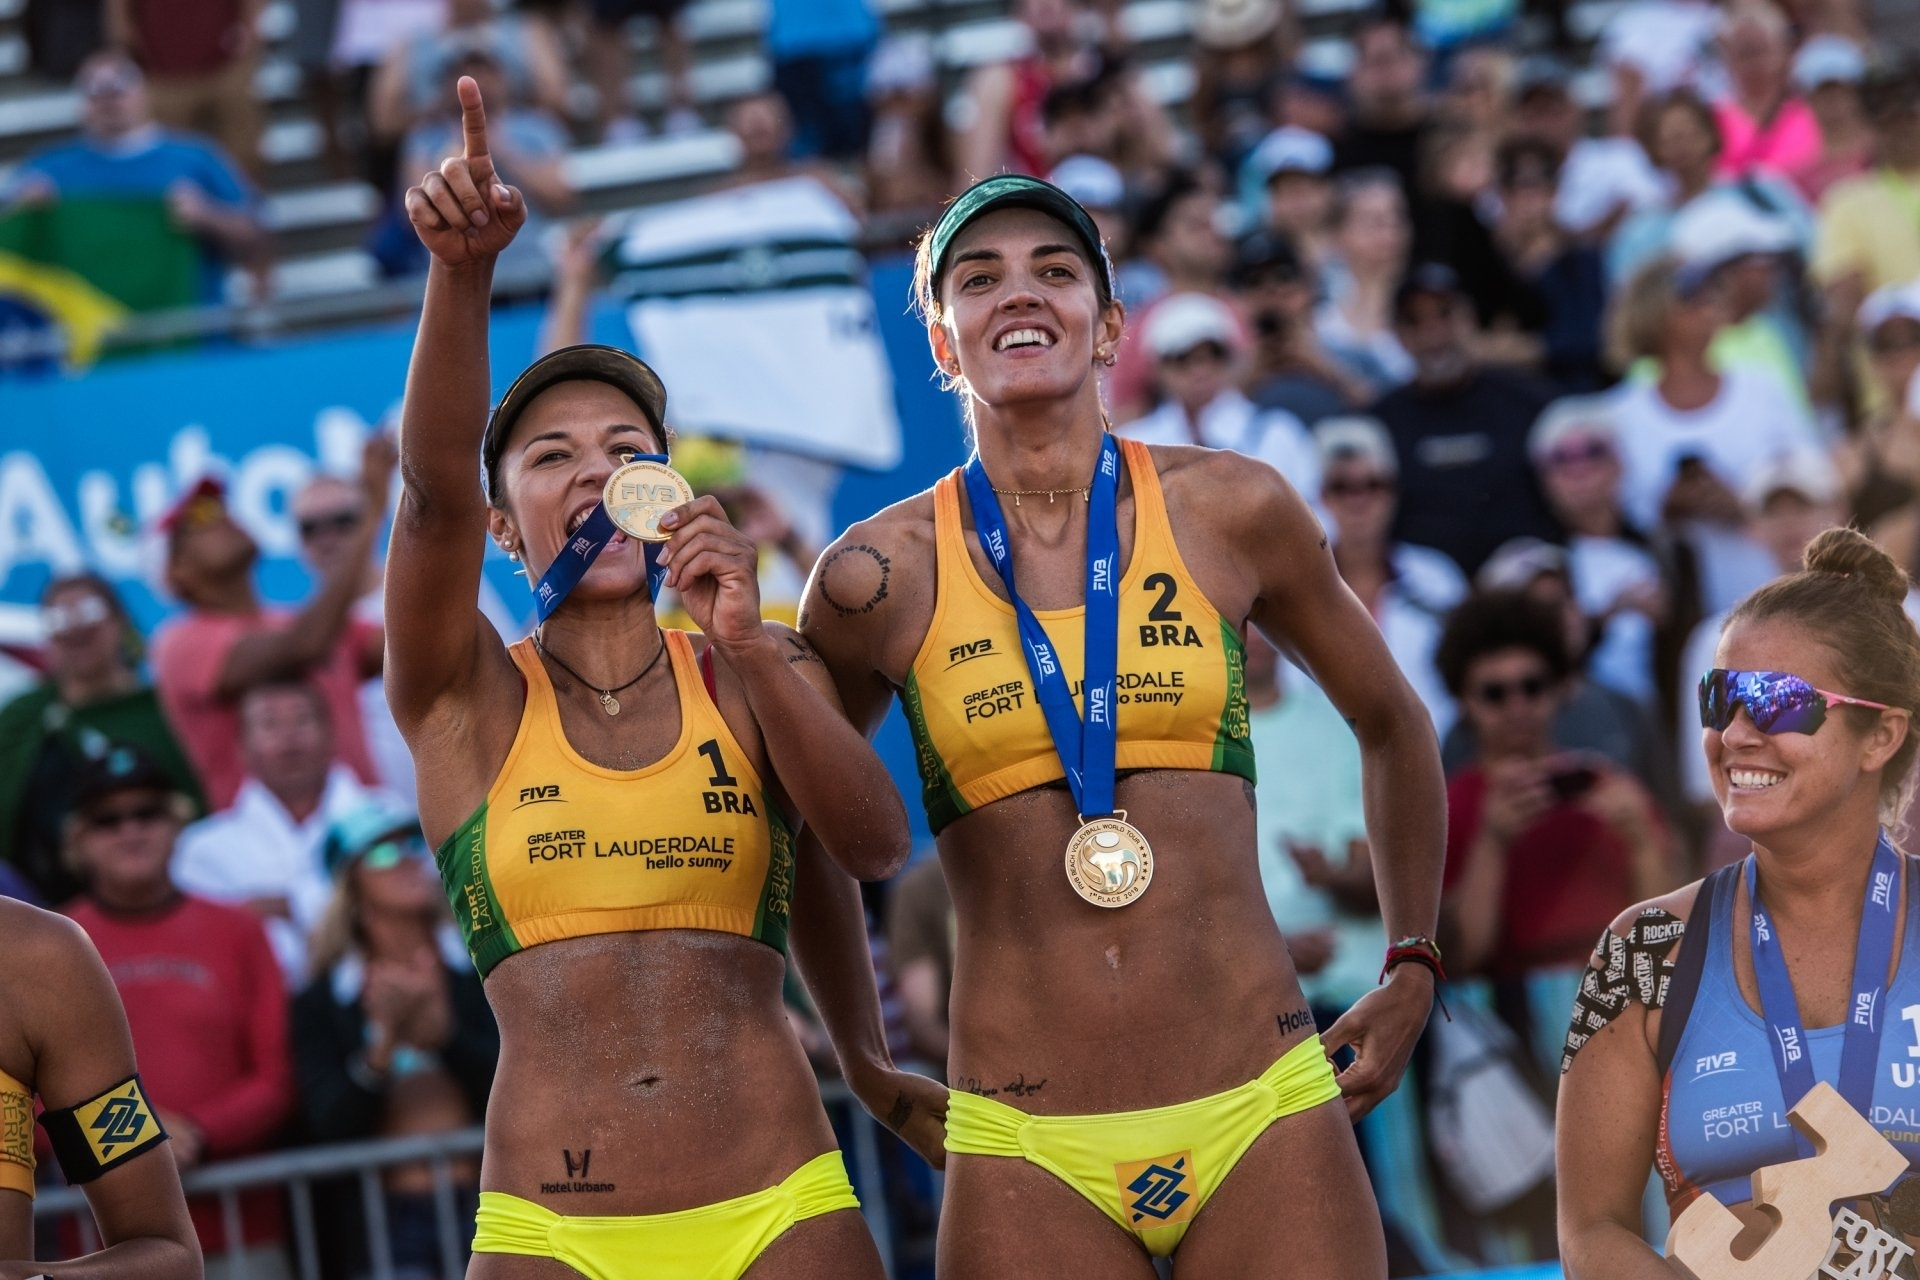 Barbara and Fernanda, FTL Major champs in March, won gold in Huntington Beach